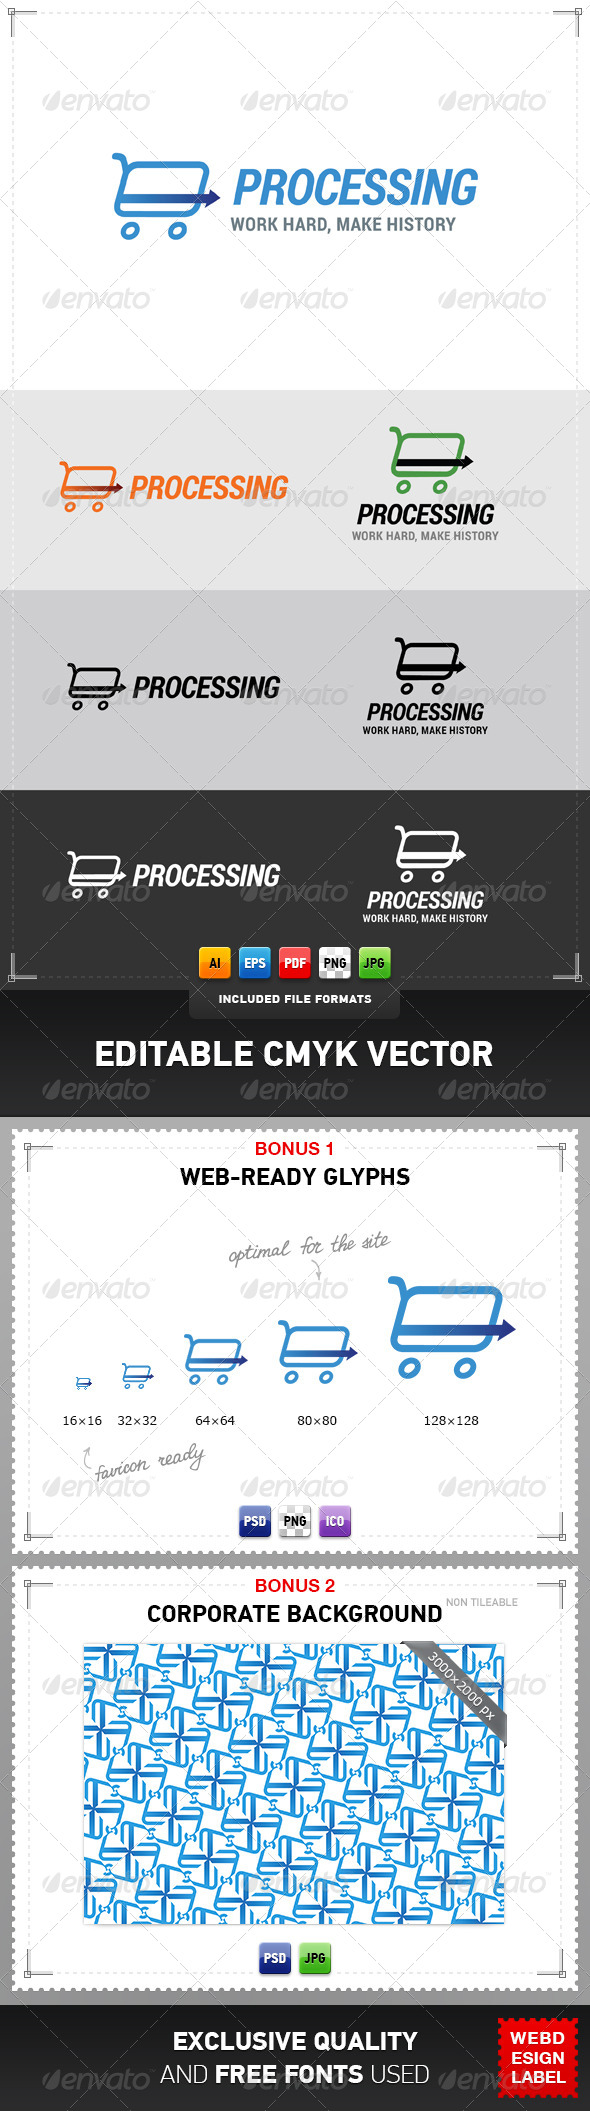 Card Processing Logo - Objects Logo Templates